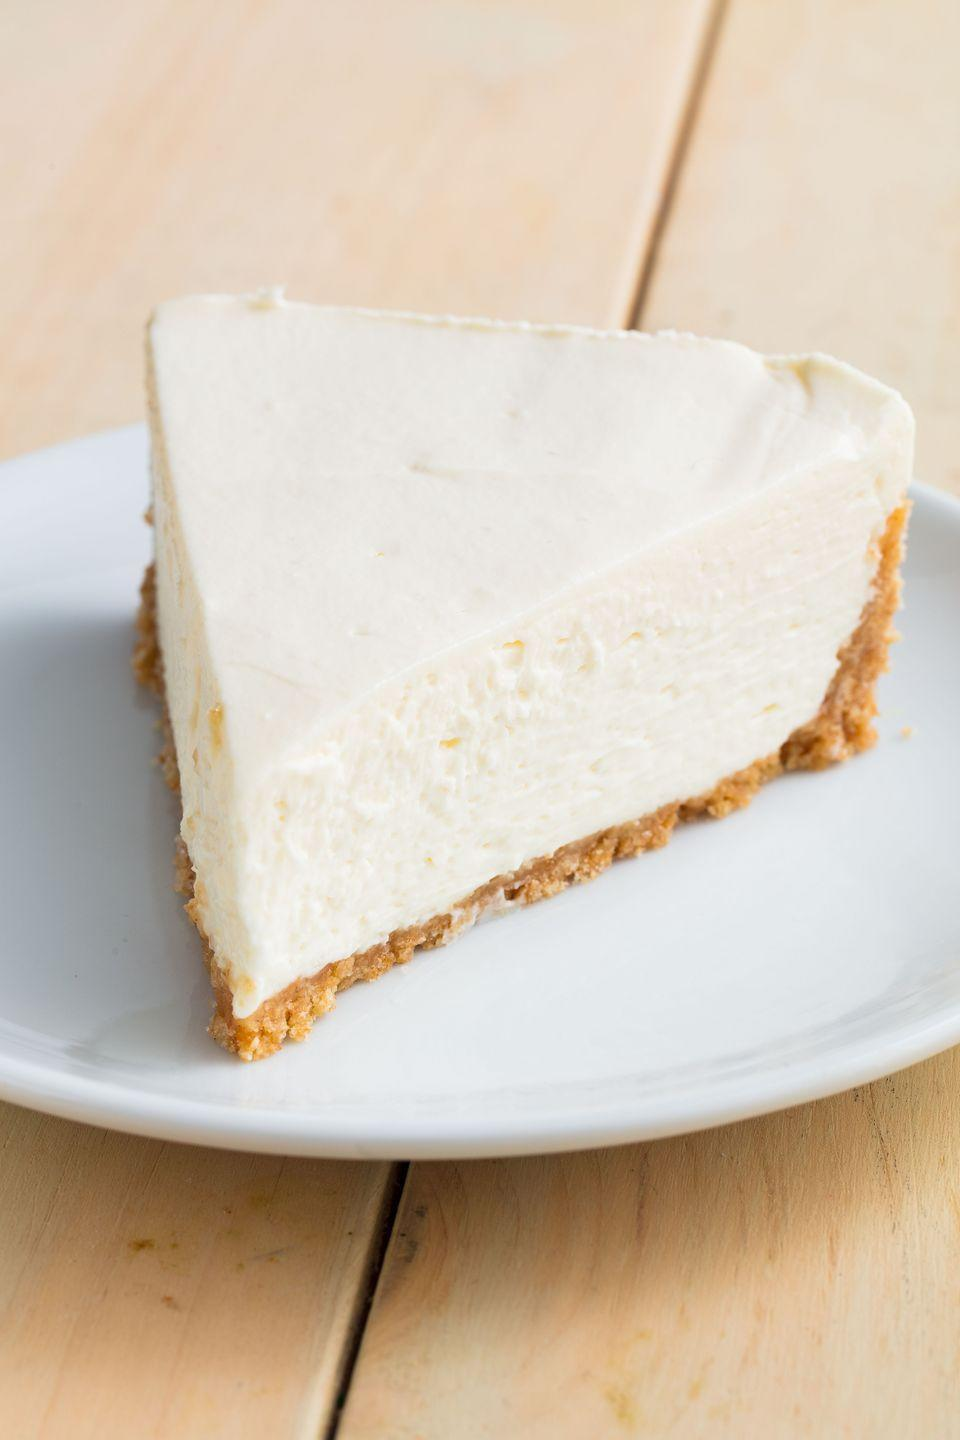 """<p>Takes all the stress of baking a cheesecake away. </p><p>Get the recipe from <a href=""""https://www.delish.com/cooking/recipe-ideas/a20087805/easy-no-bake-cheesecake-recipe/"""" rel=""""nofollow noopener"""" target=""""_blank"""" data-ylk=""""slk:Delish"""" class=""""link rapid-noclick-resp"""">Delish</a>. </p>"""